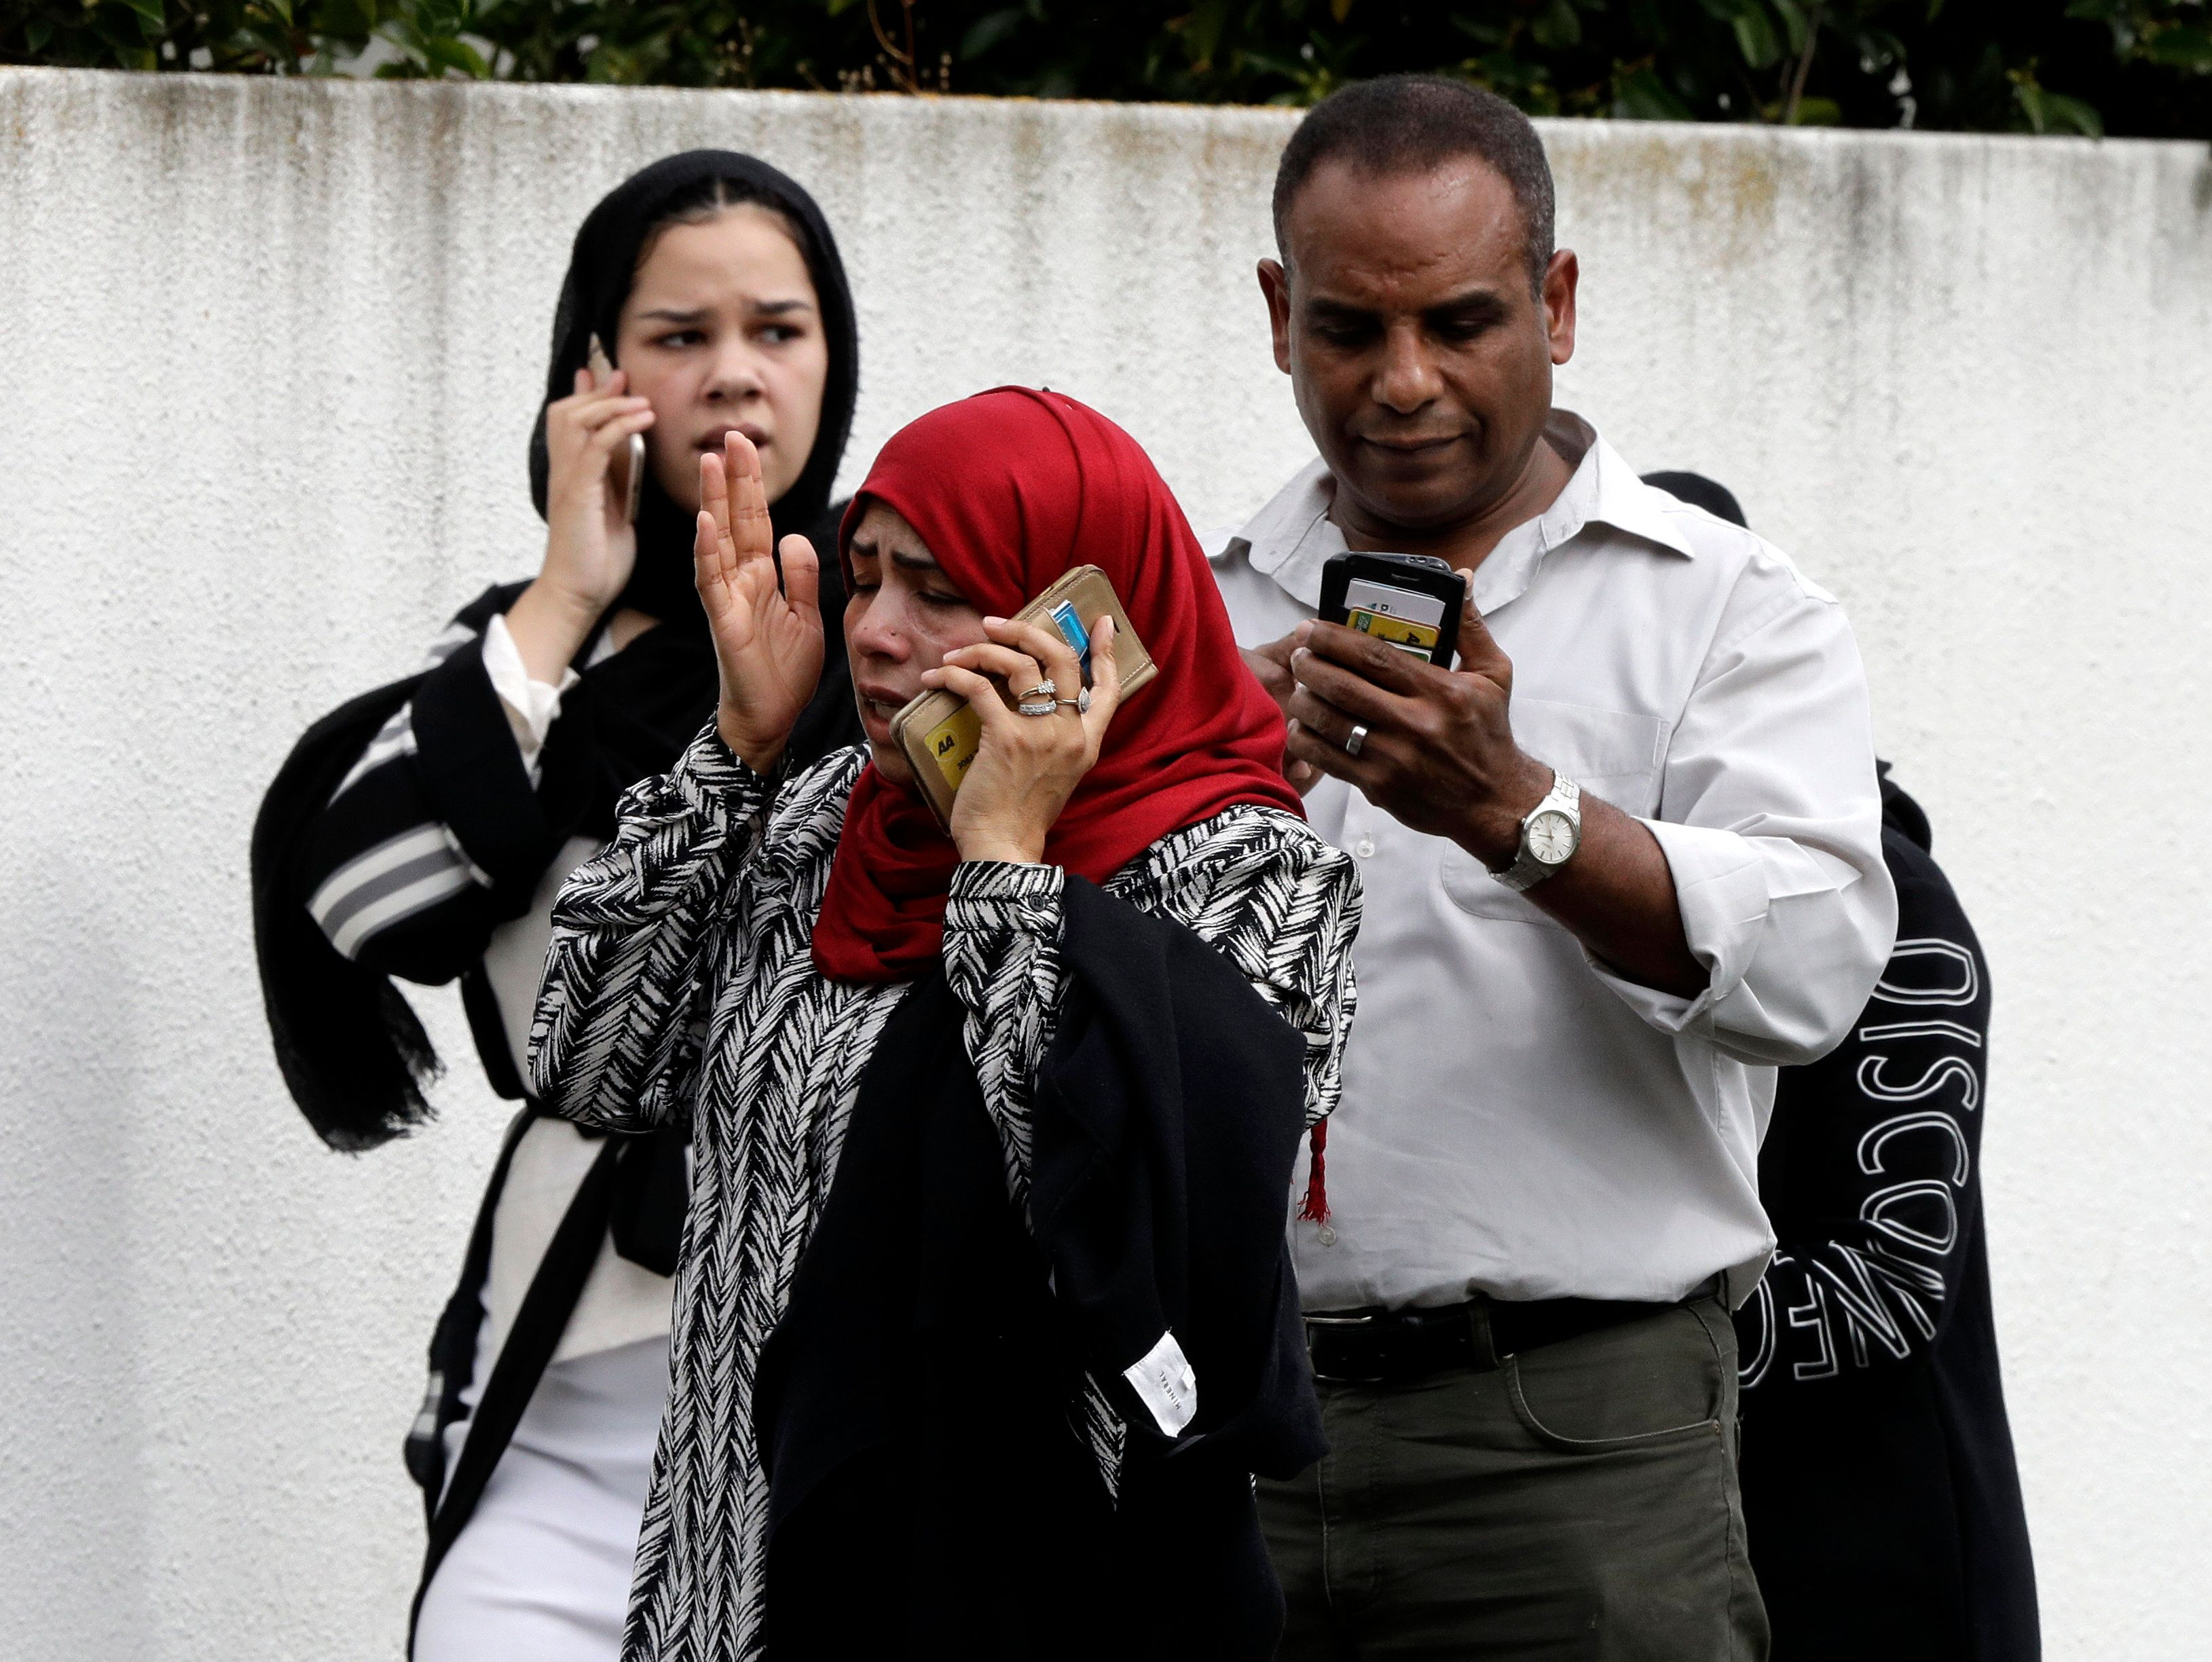 People wait outside a mosque in central Christchurch, New Zealand, Friday, March 15, 2019. Many people were killed in a mass shooting at a mosque, a witness said. (AP Photo/Mark Baker)